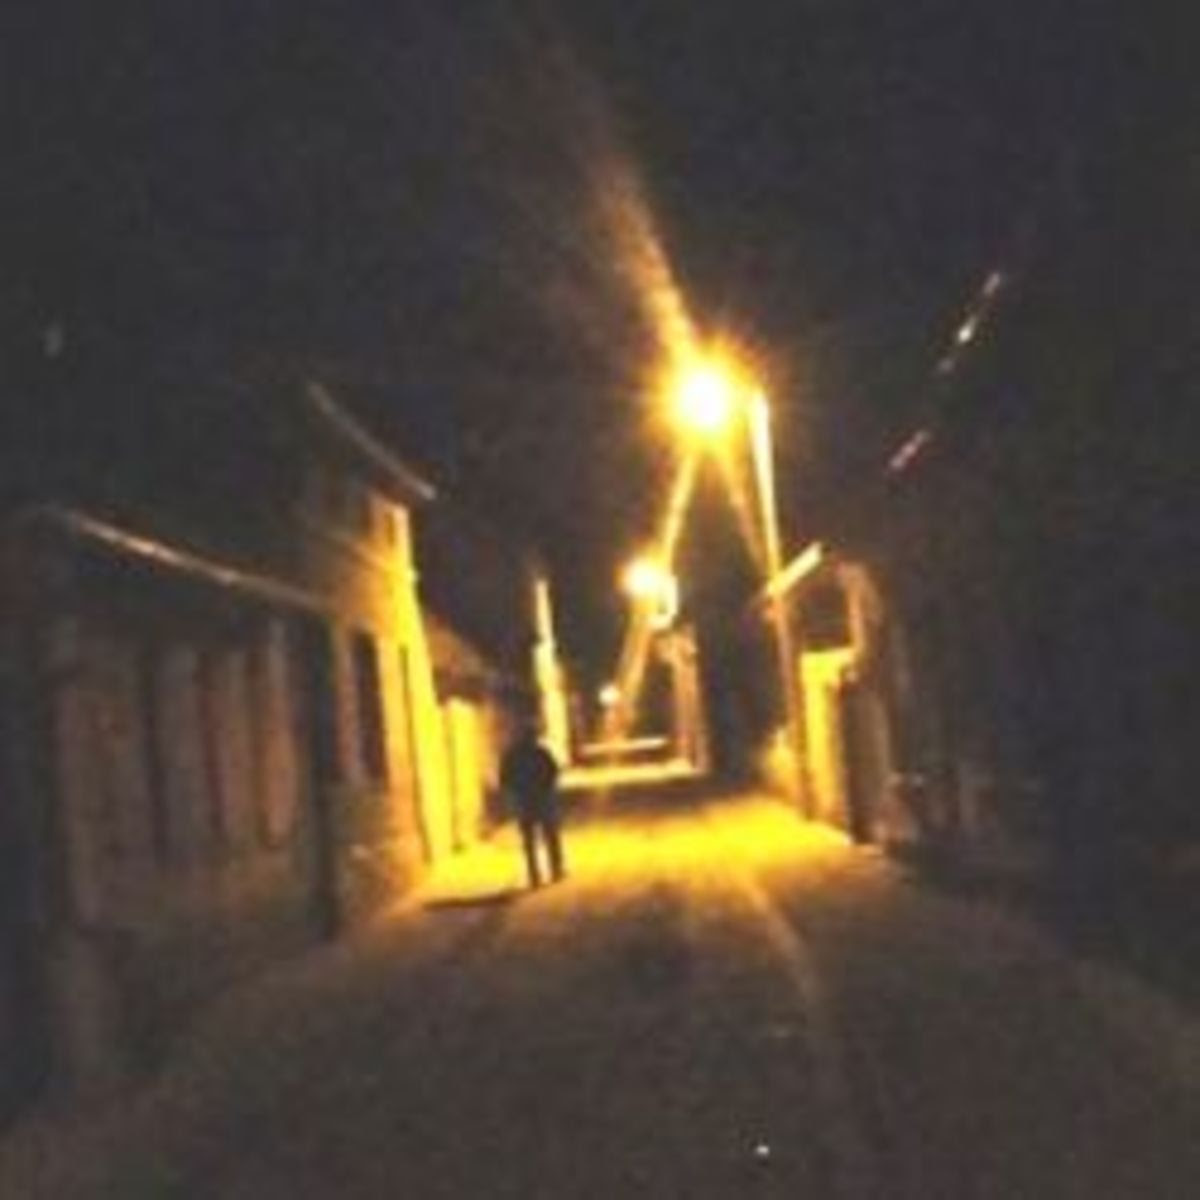 A tilted view of a person walking down a poorly-lit street at night.